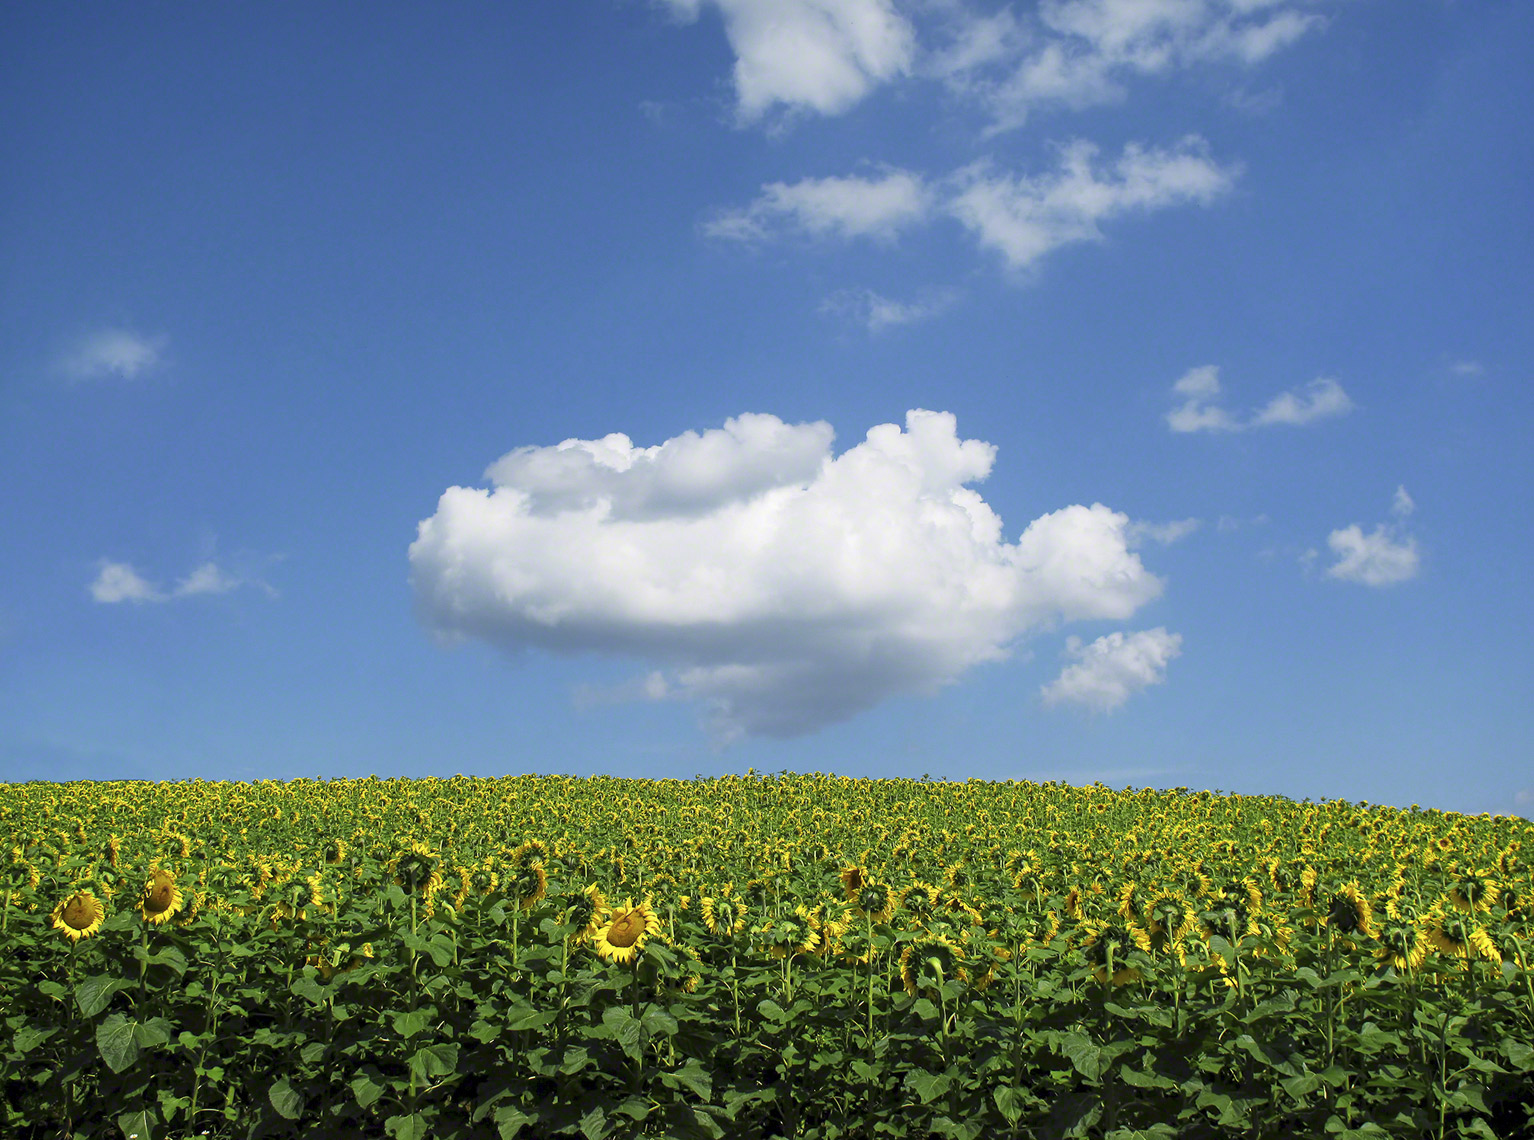 davidhoptman_photo-landscapes--italysunflowers-cloudstv1q